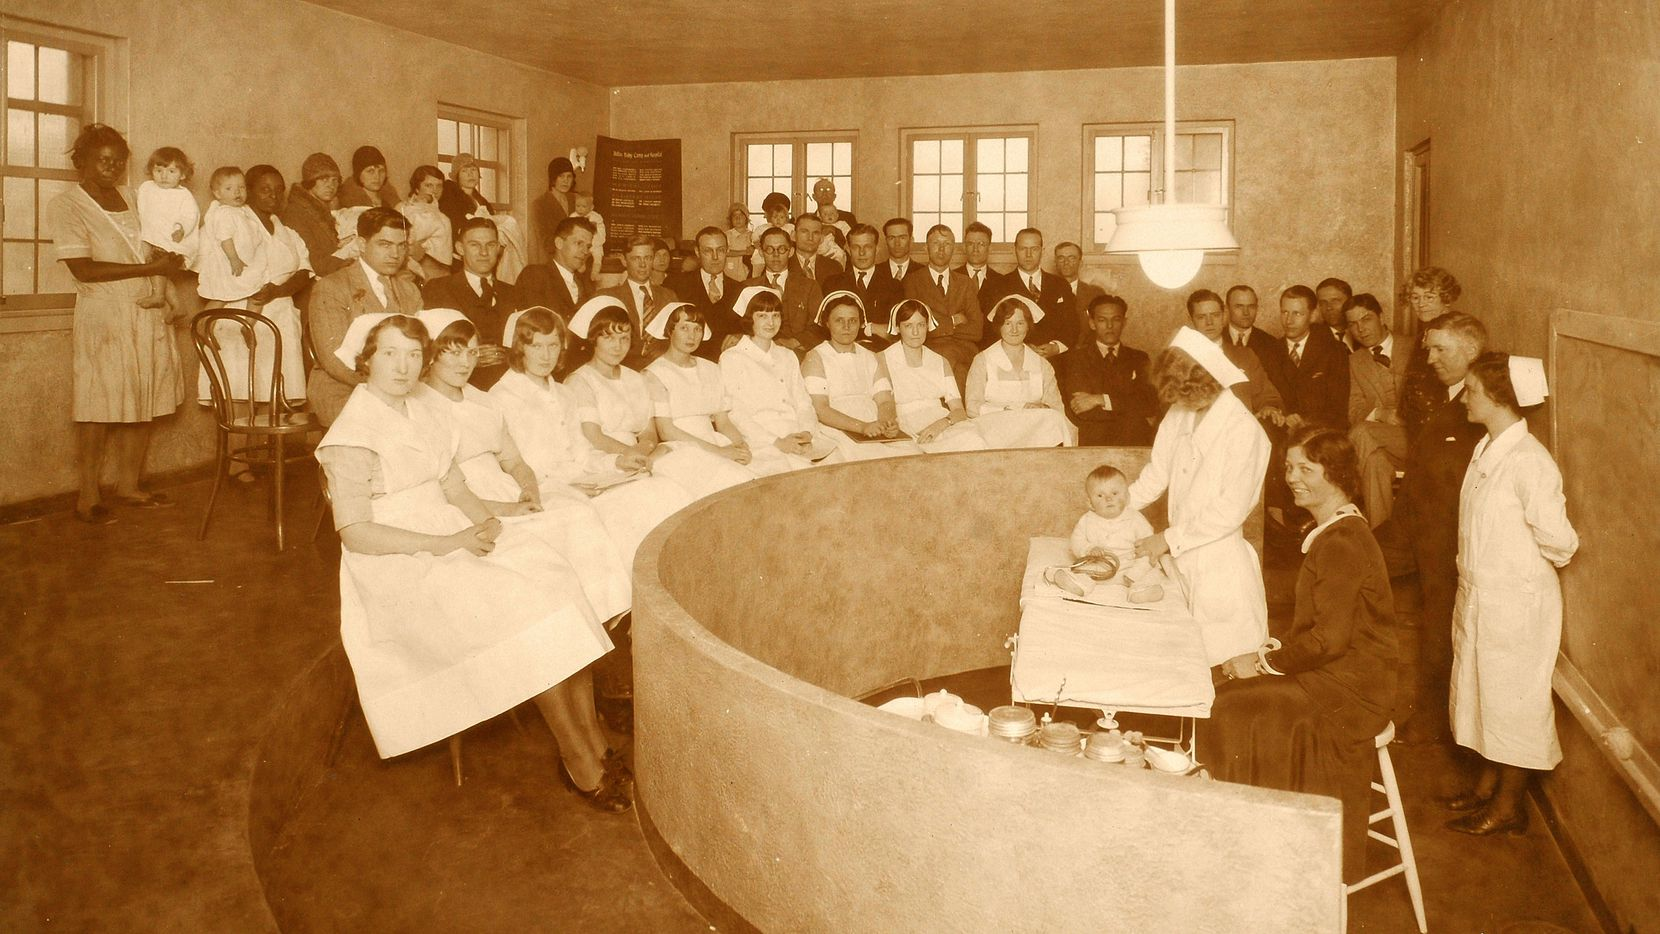 A 1930s Bradford Hospital classroom for nursing students, medical students and mothers. Photo courtesy of Children's Medical Center.